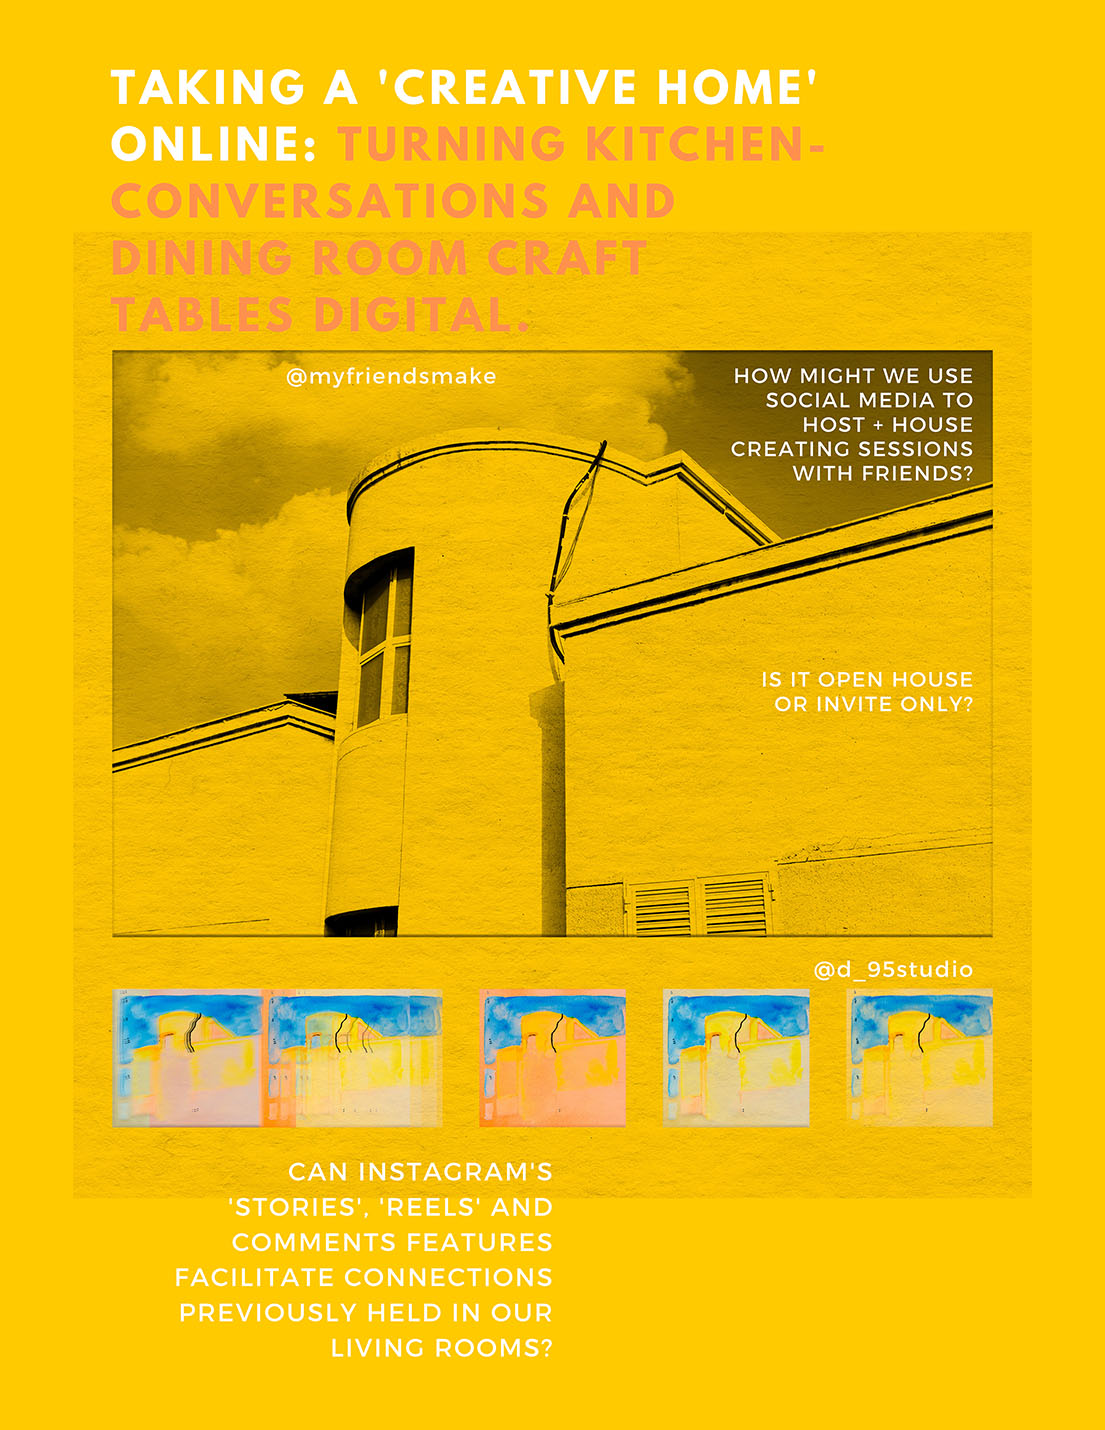 Photo of building on yellow background with text: TAKING 'CREATIVE HOMES' ONLINE: turning kitchen-conversations and dining room craft tables digital. How might we use social media to host and house creative sessions with friends? Is it open house or invite only? Can Instagram's